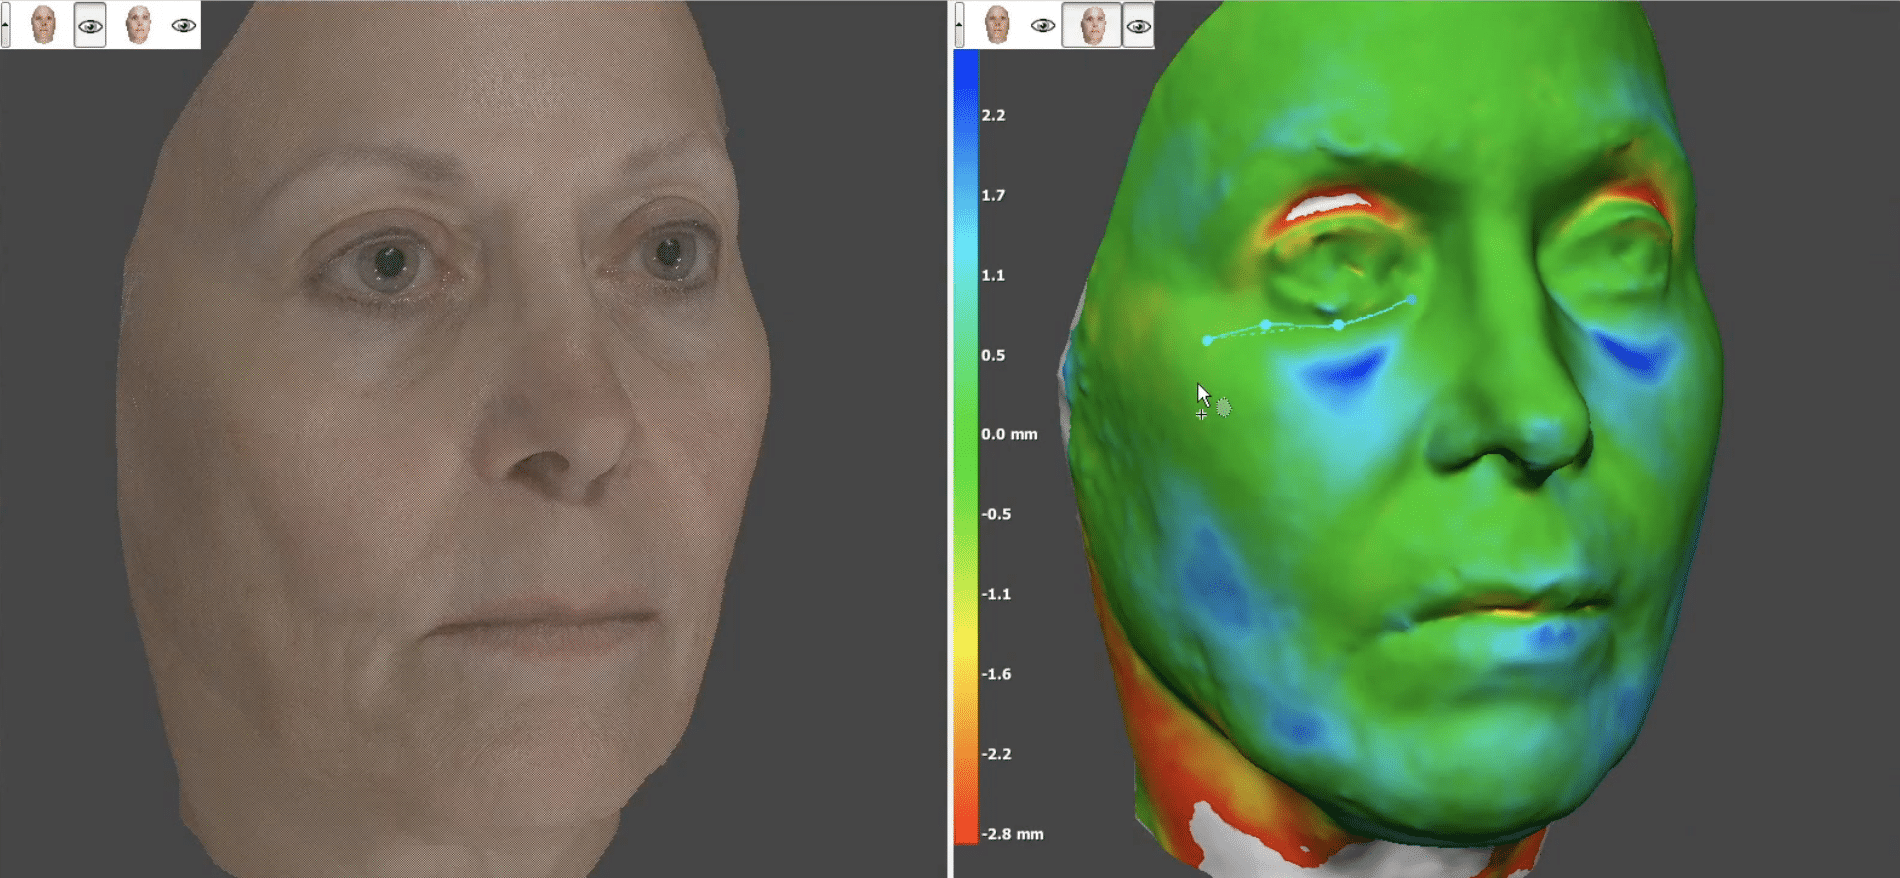 3D Facial Scanning Before Cosmetic Surgery